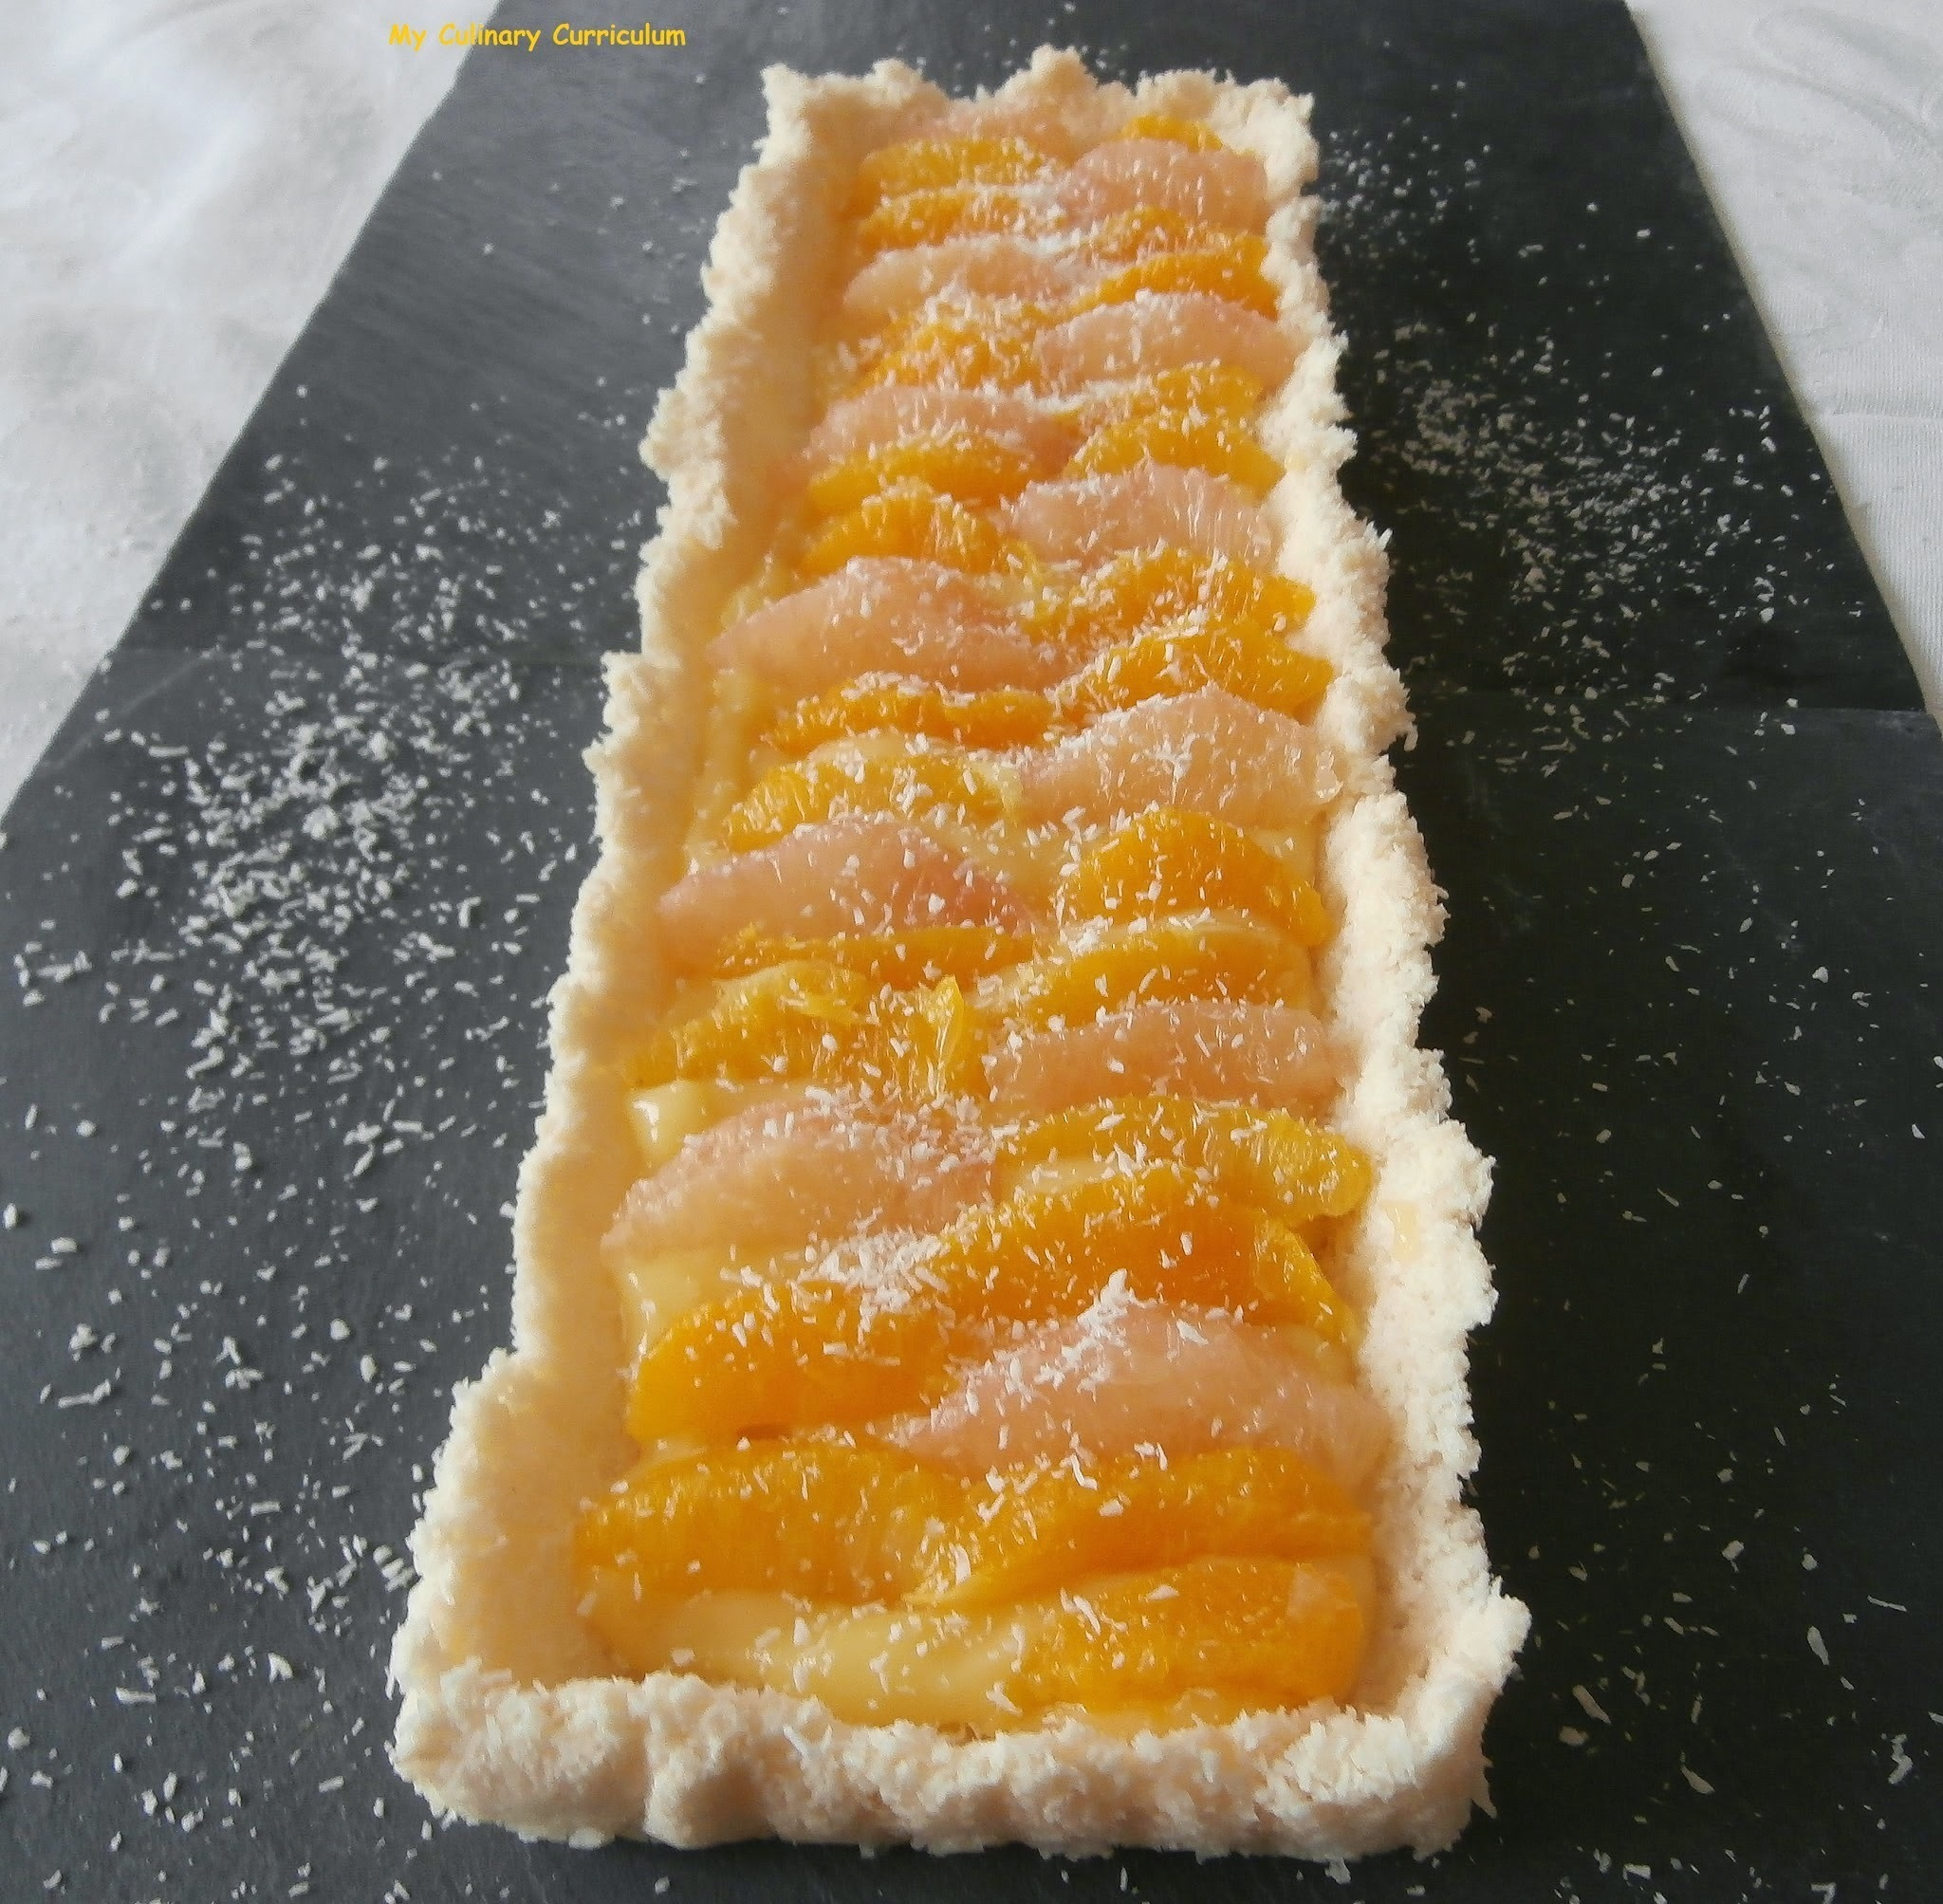 Tarte aux agrumes, noix de coco et lemon curd (Tart citrus, coconut and lemon curd)